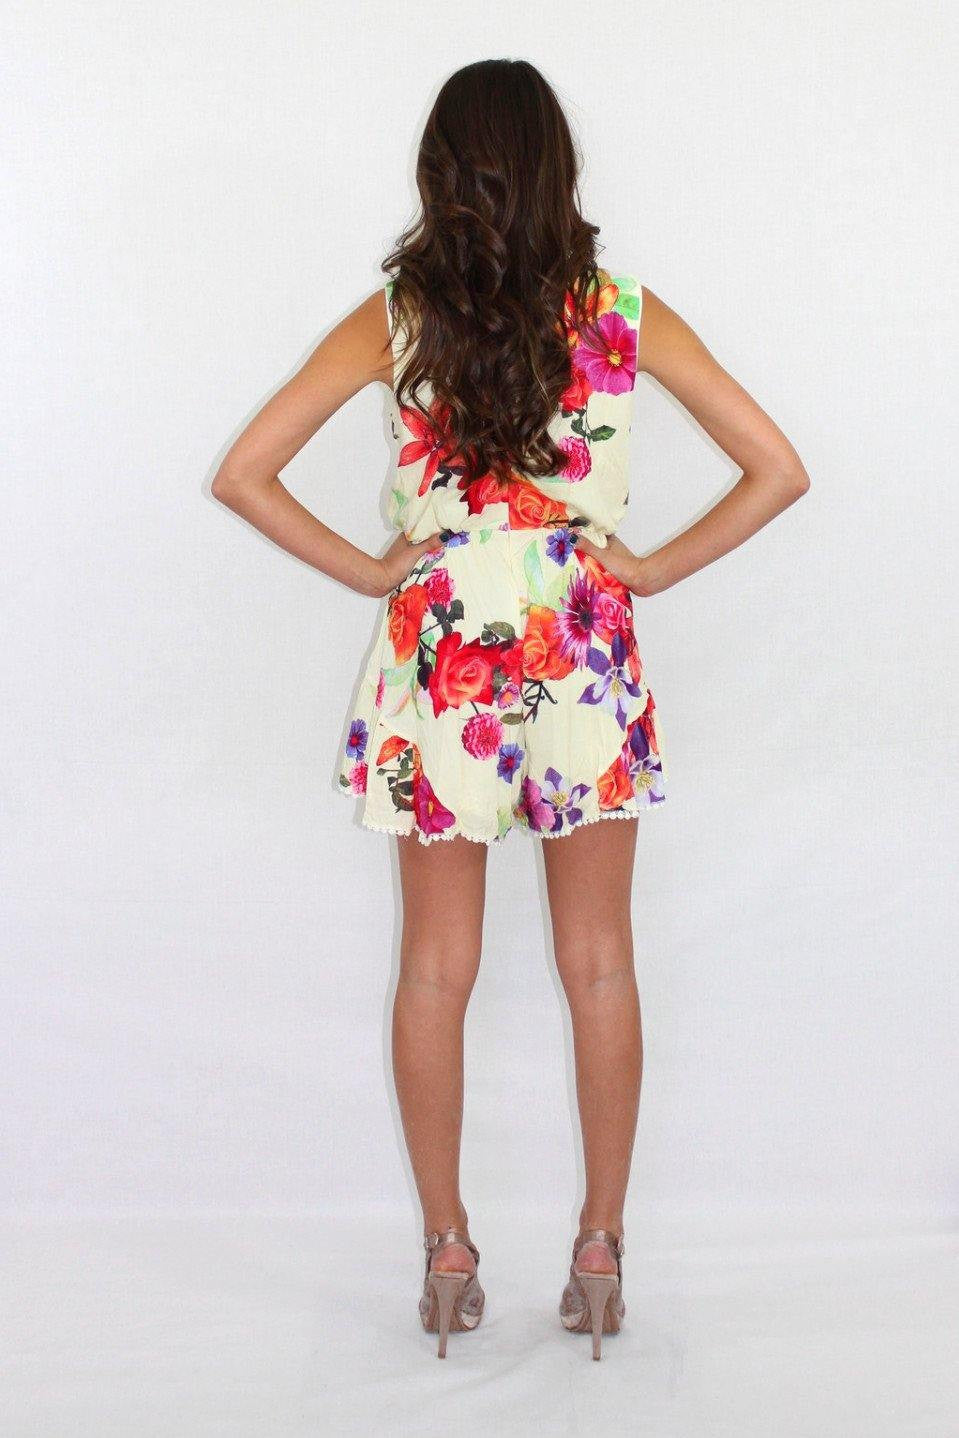 Sweet Nothing Sleeveless Floral Romper - The Laguna Room